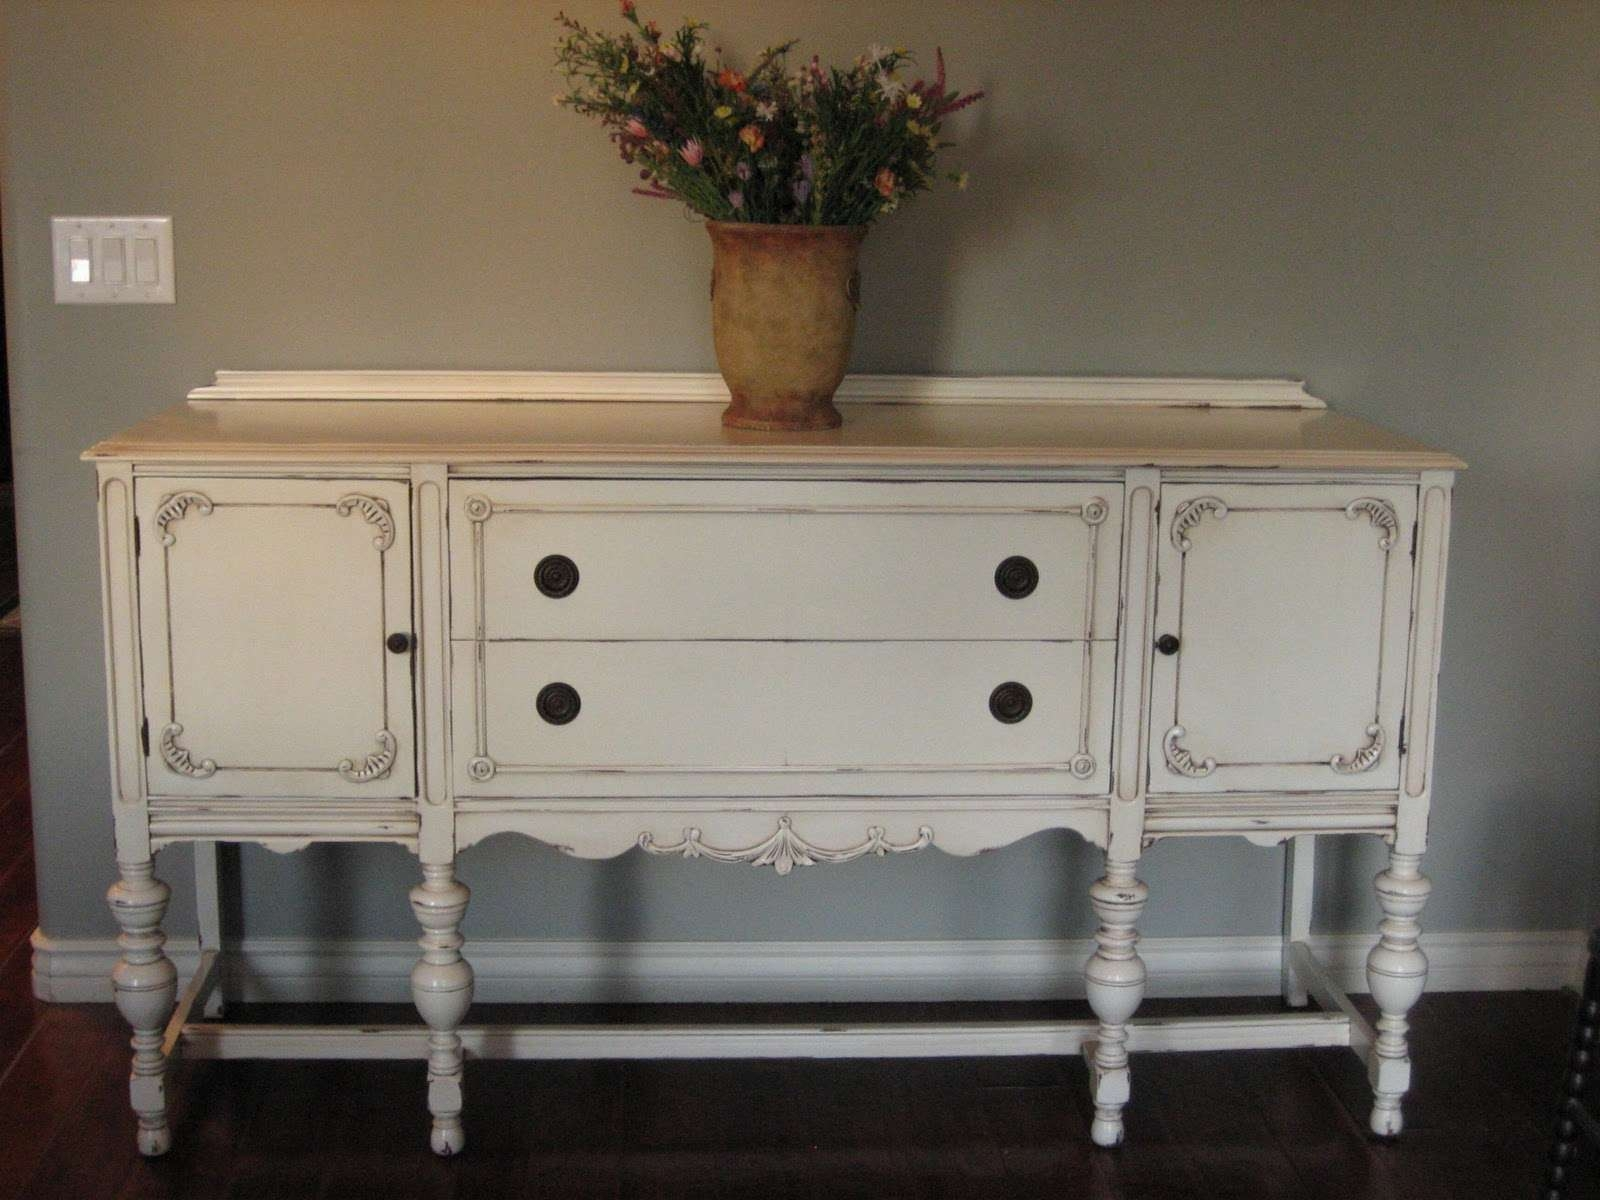 Inspirational Antique White Sideboard – Bjdgjy Within Large White Sideboards (View 20 of 20)